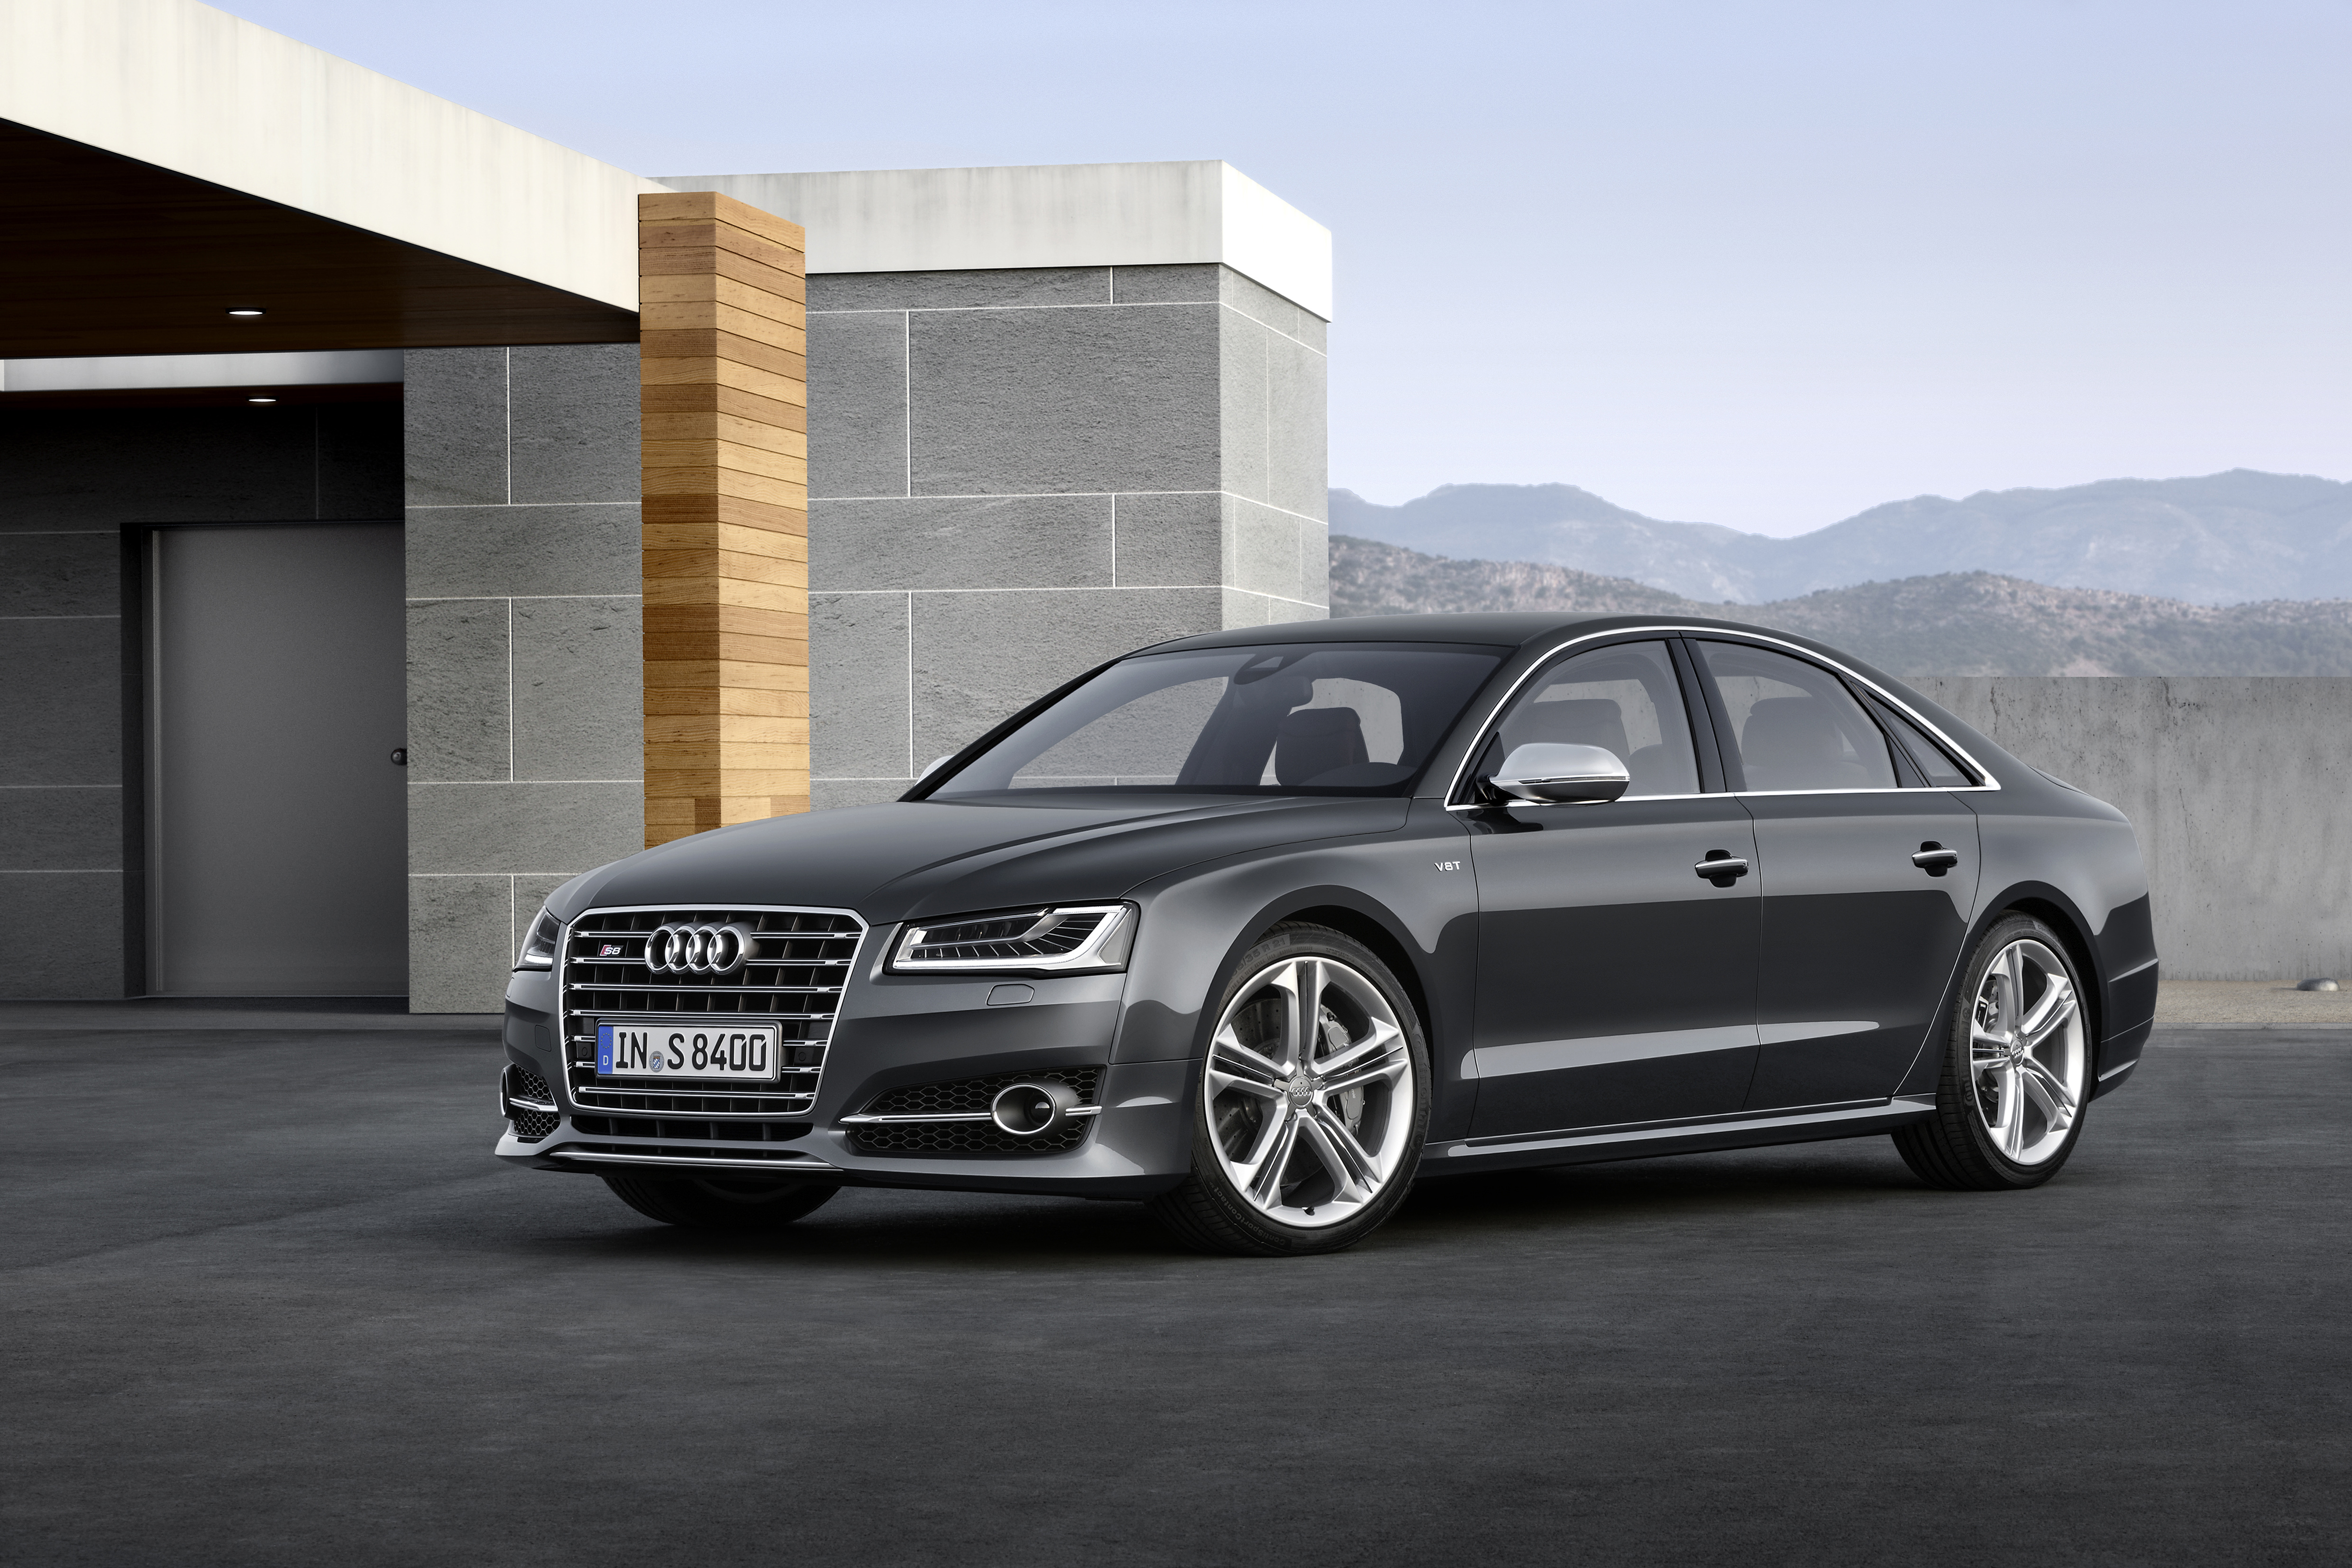 2013 Audi Q5 0 60 Time >> 2015 Audi S8 Top Speed